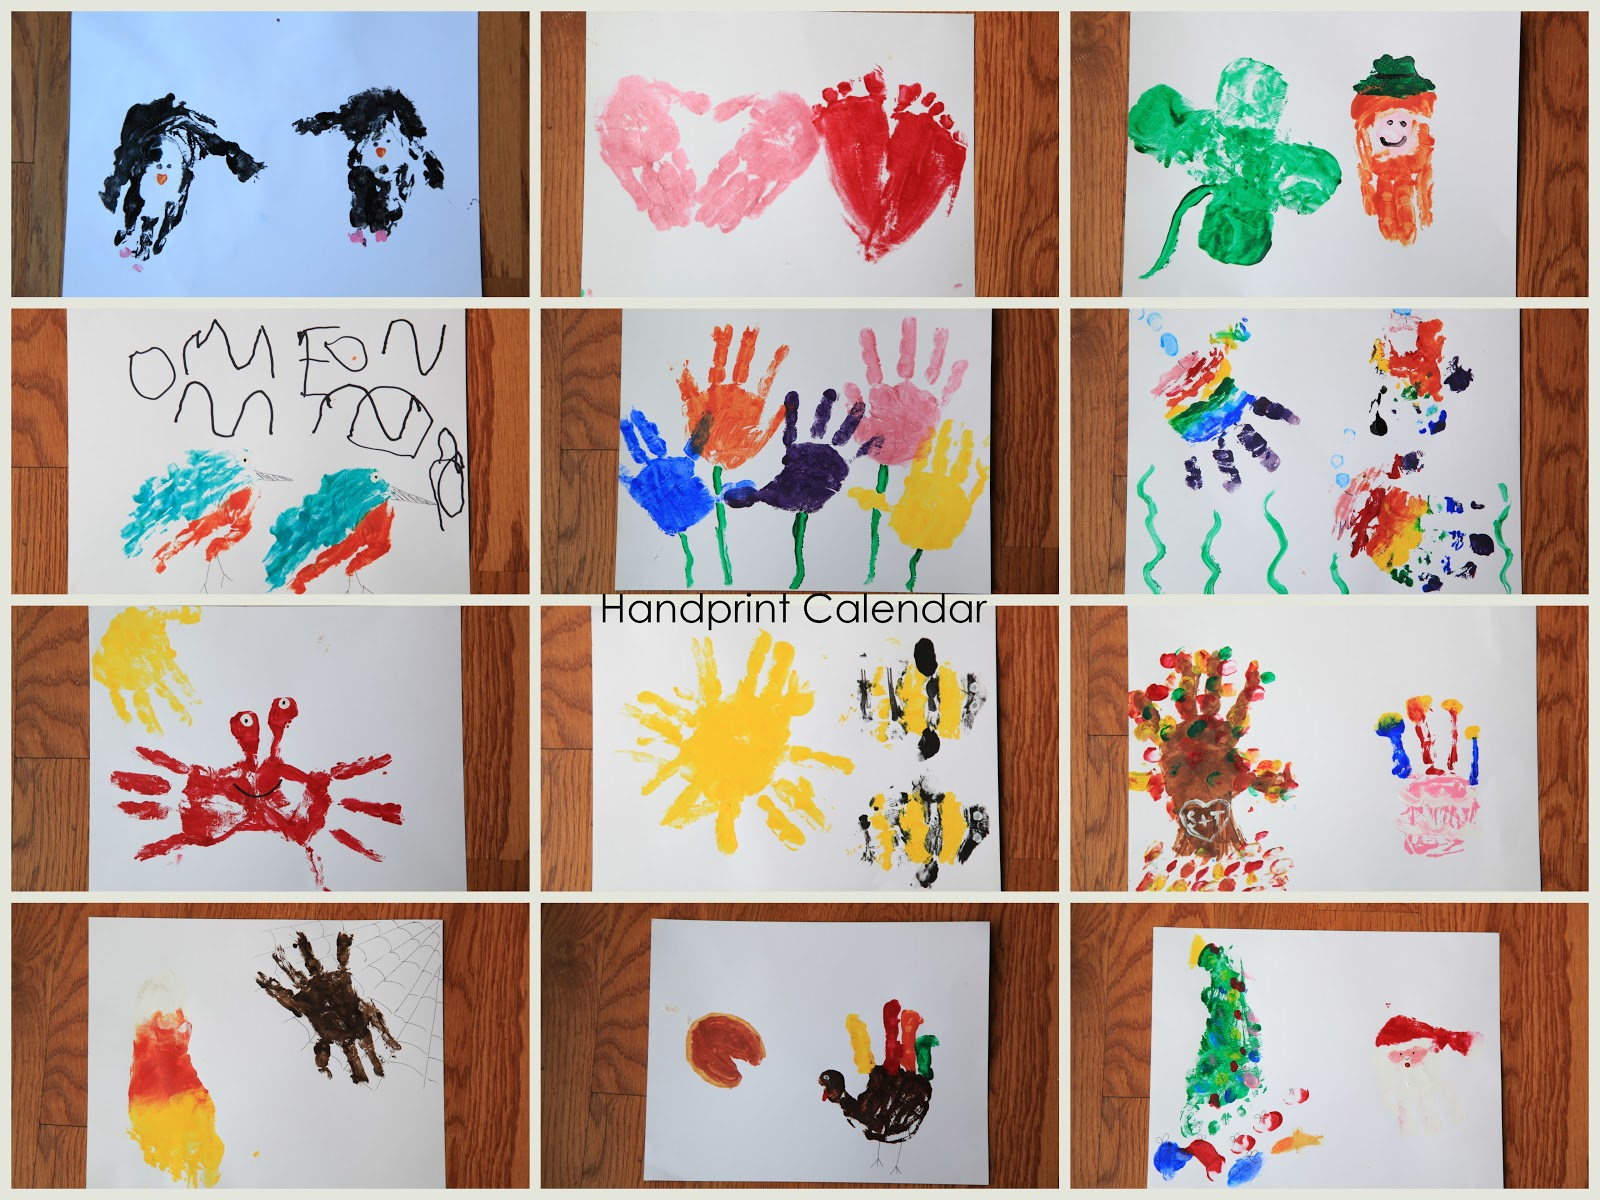 Million Things I Love . . .: #657 - handprint calendar 2013